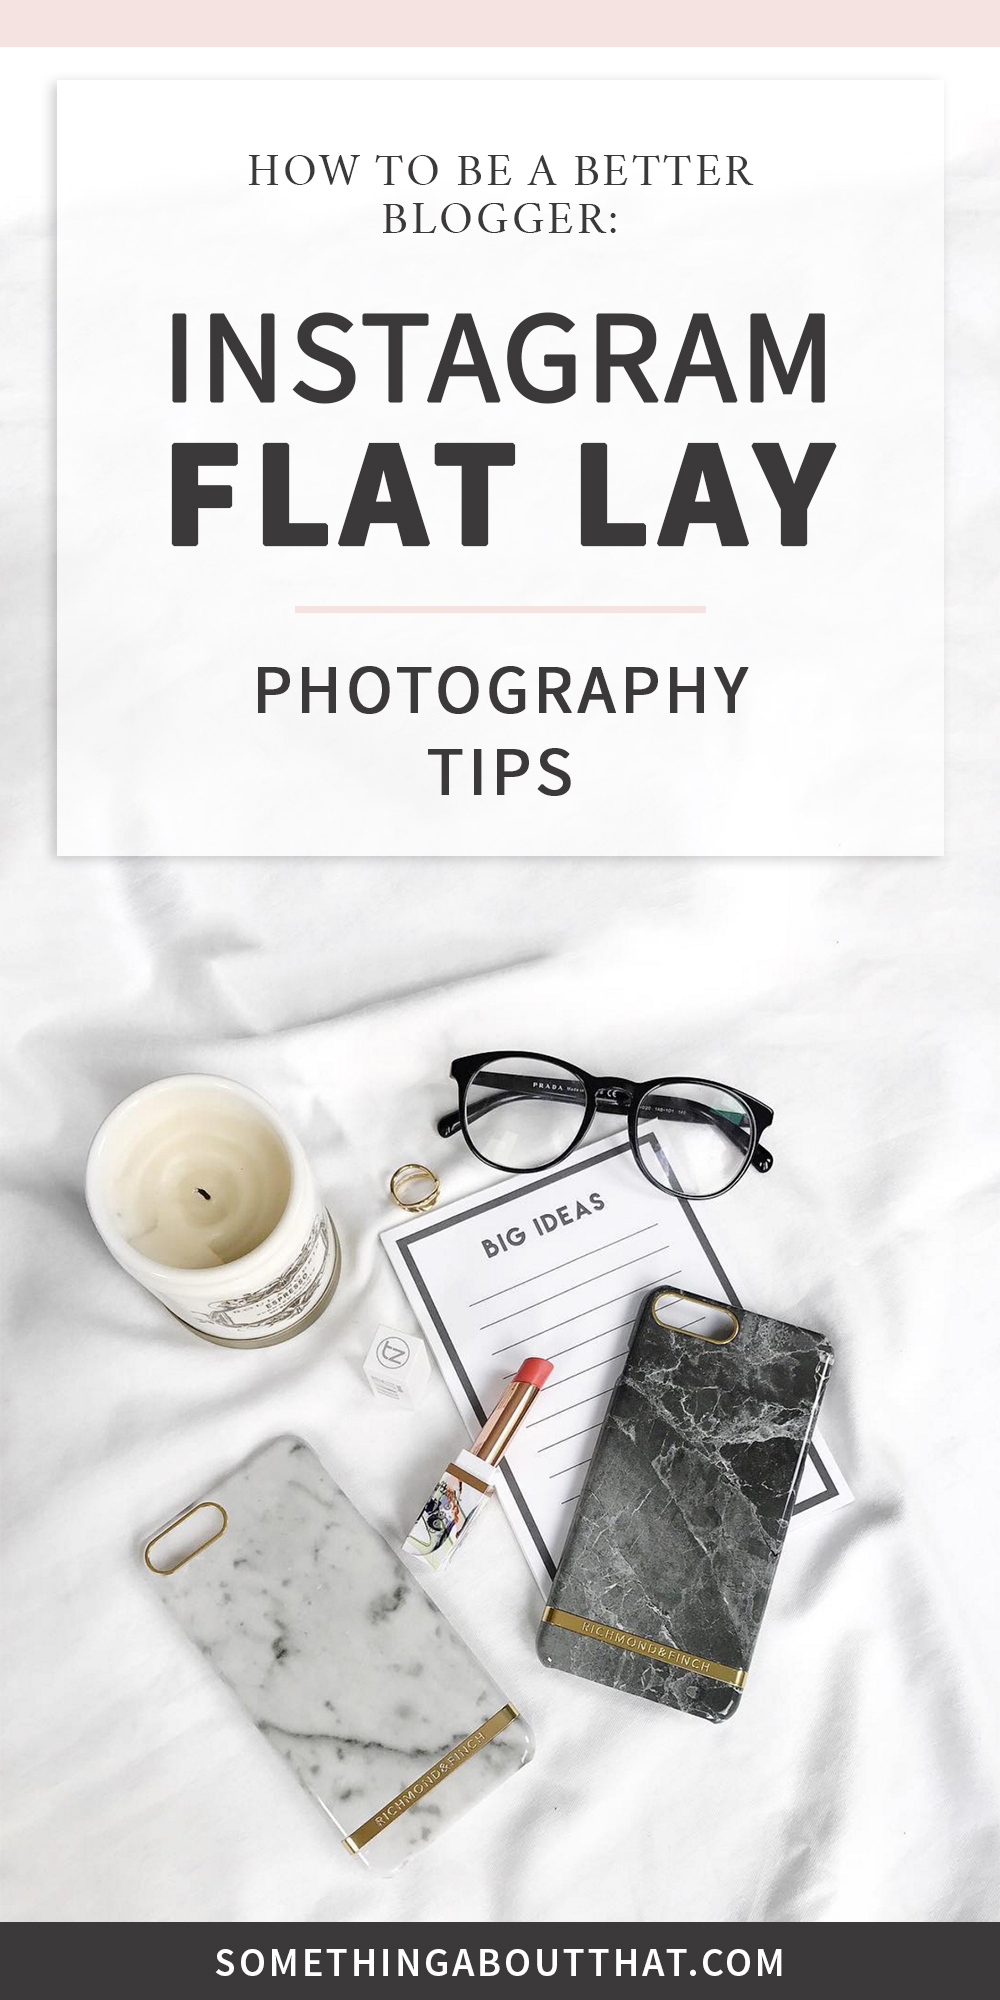 Up Your Instagram Game: 10 Instagram Flat Lay Photography Tips